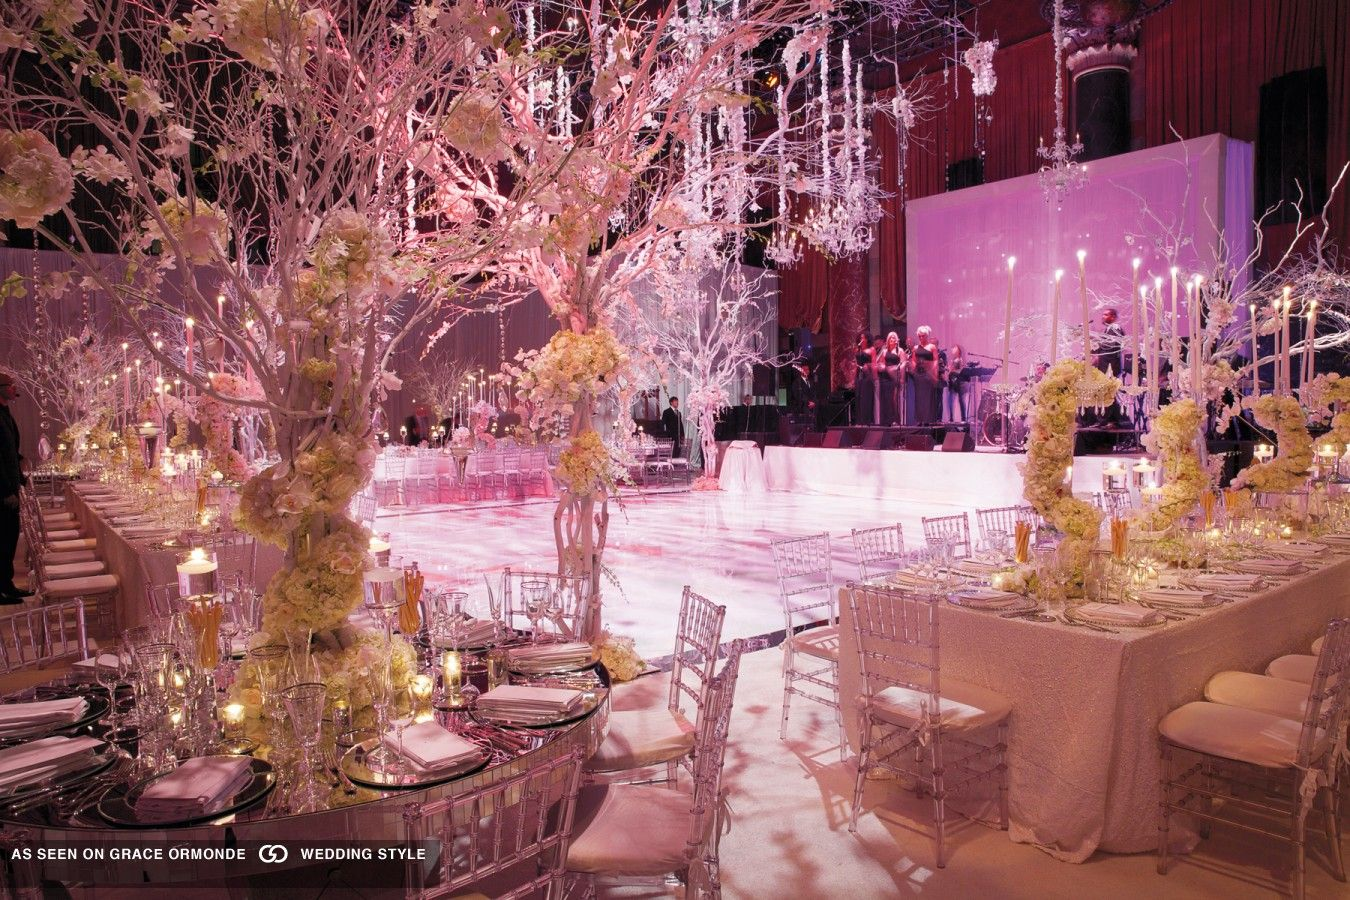 interfaith luxury real wedding at cipriani 42nd street in new york ...